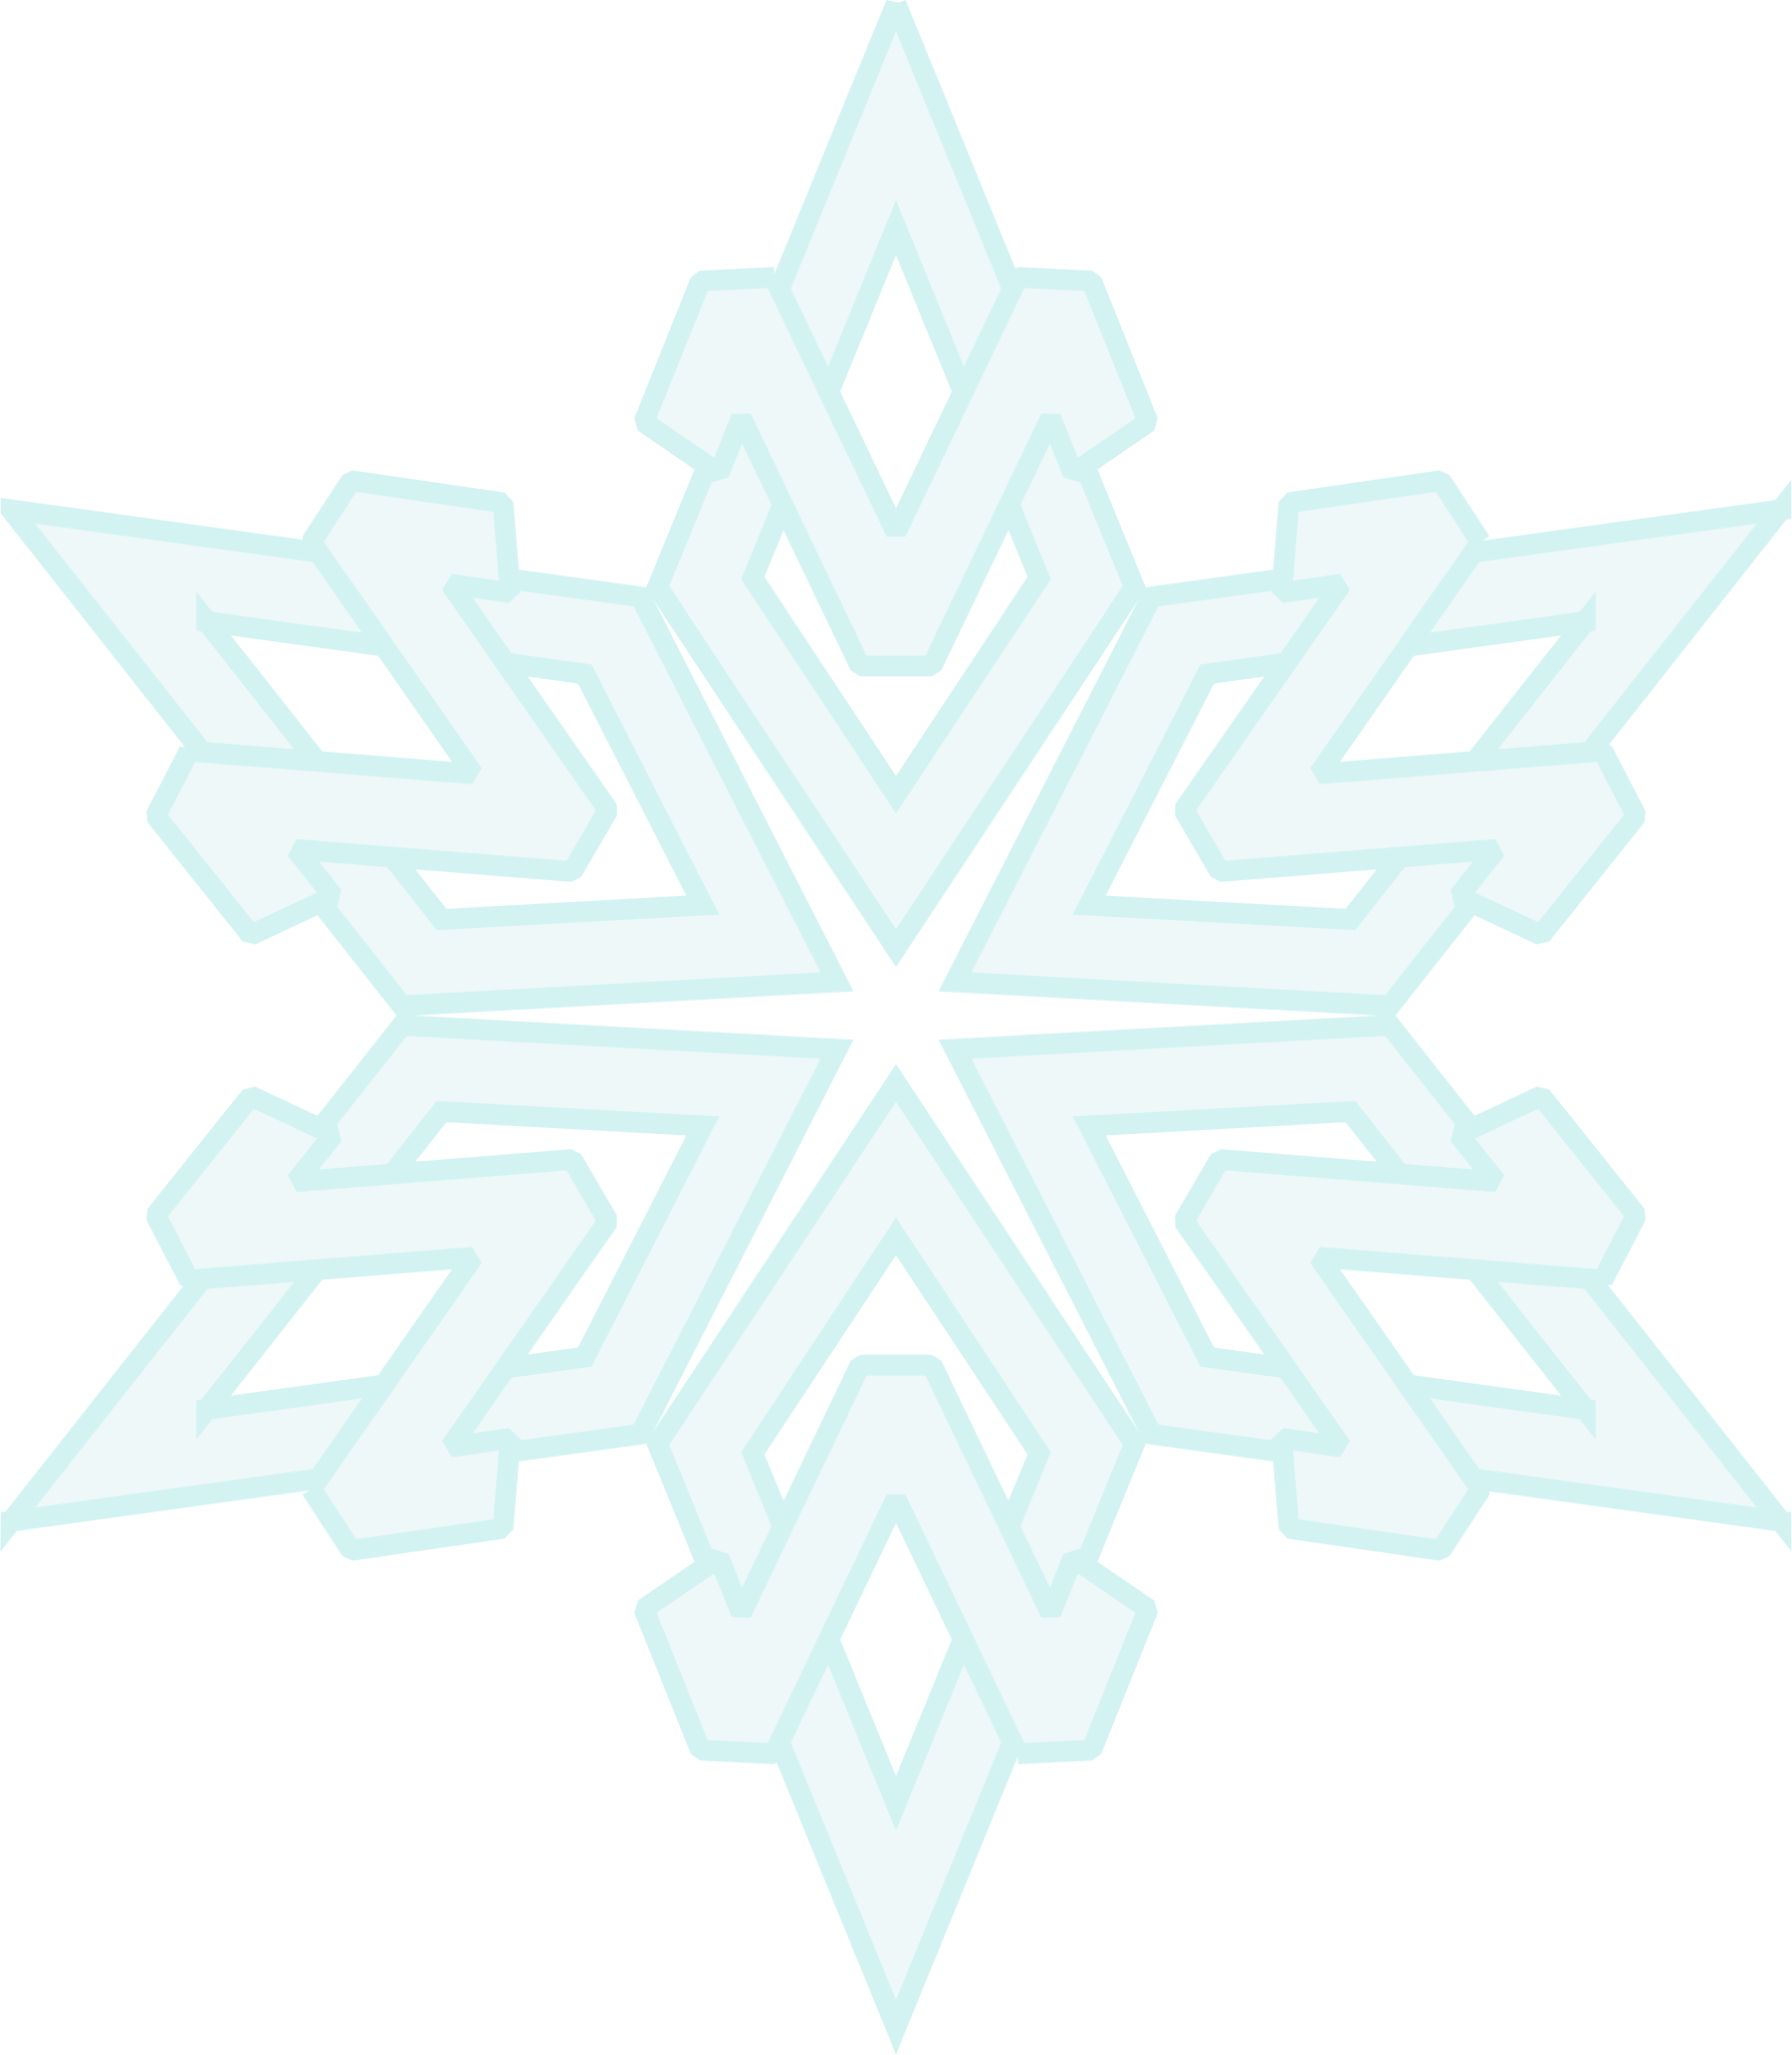 Snowflake 12 by Arvin61r58